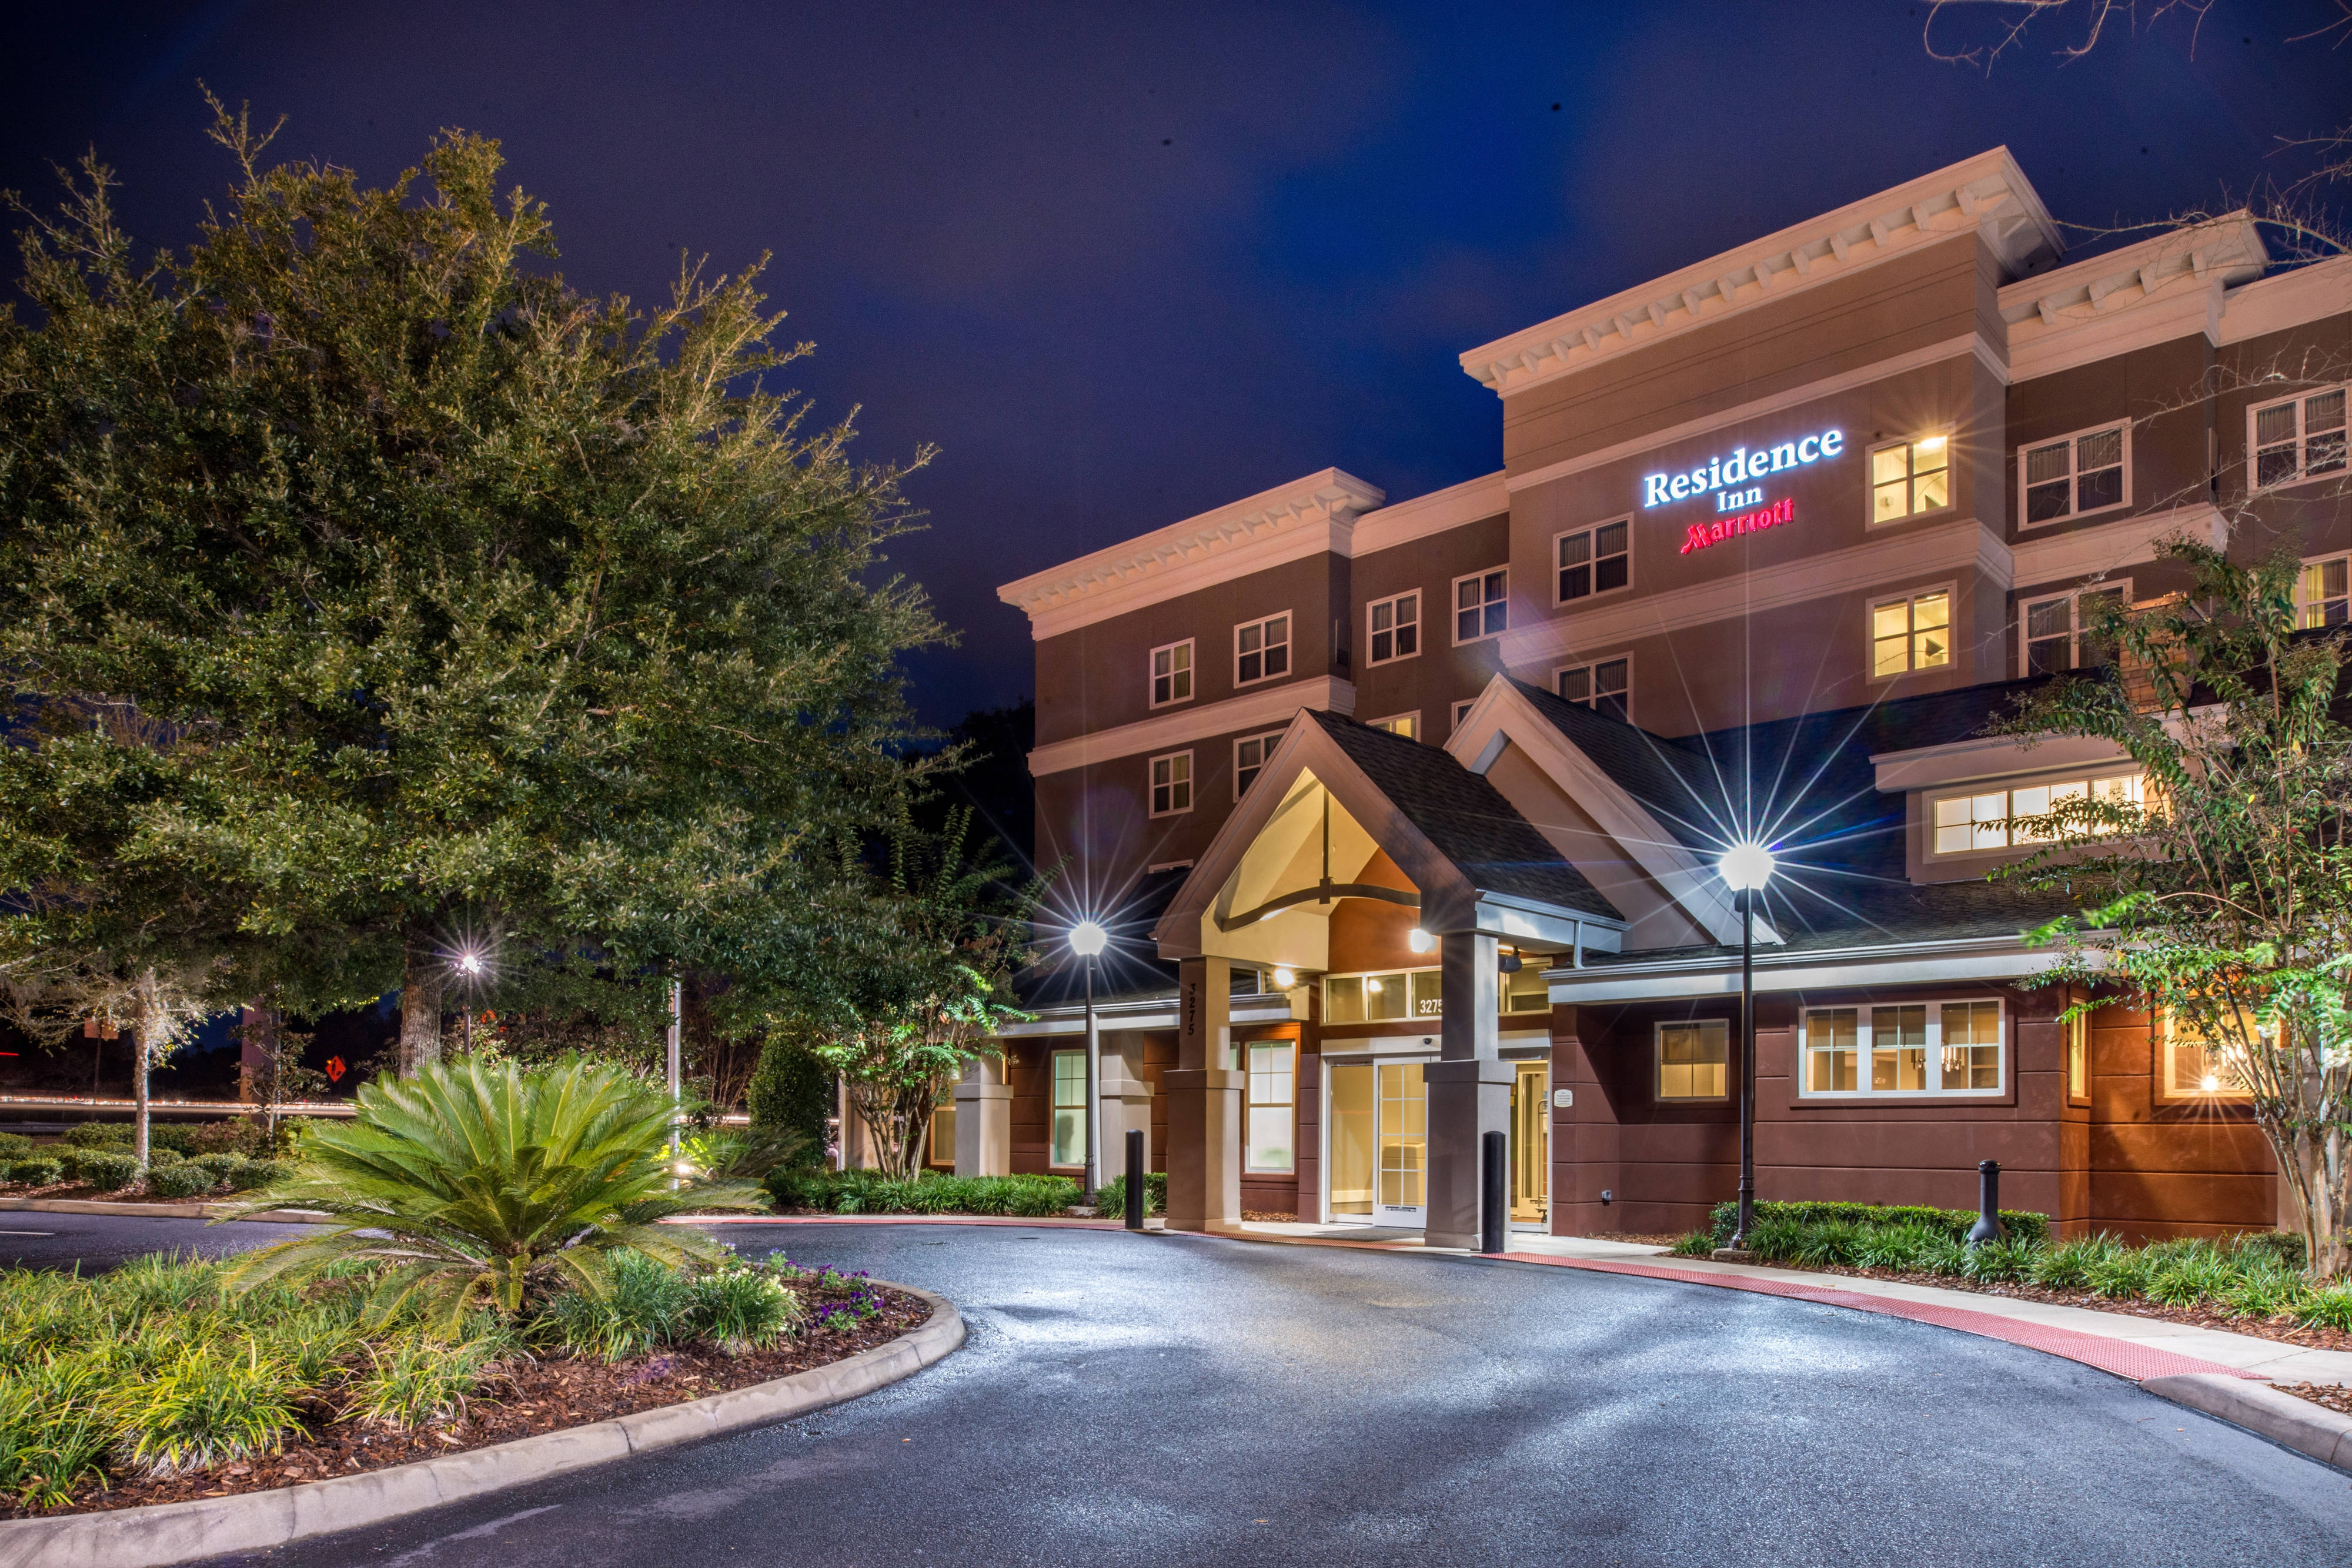 hotels in gainesville fl on archer road